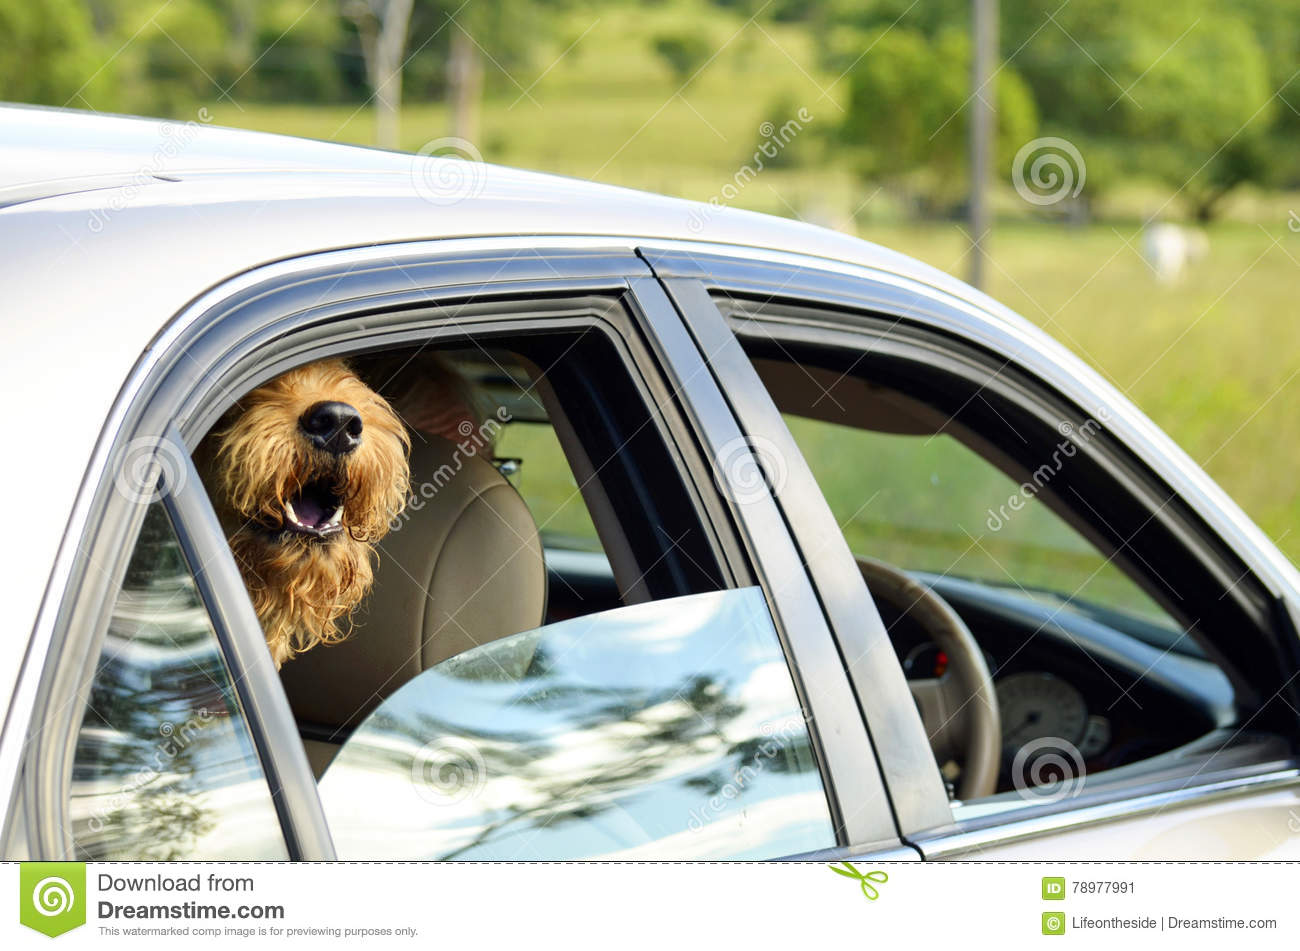 Big happy dog sticking head out car window smiling going for ride